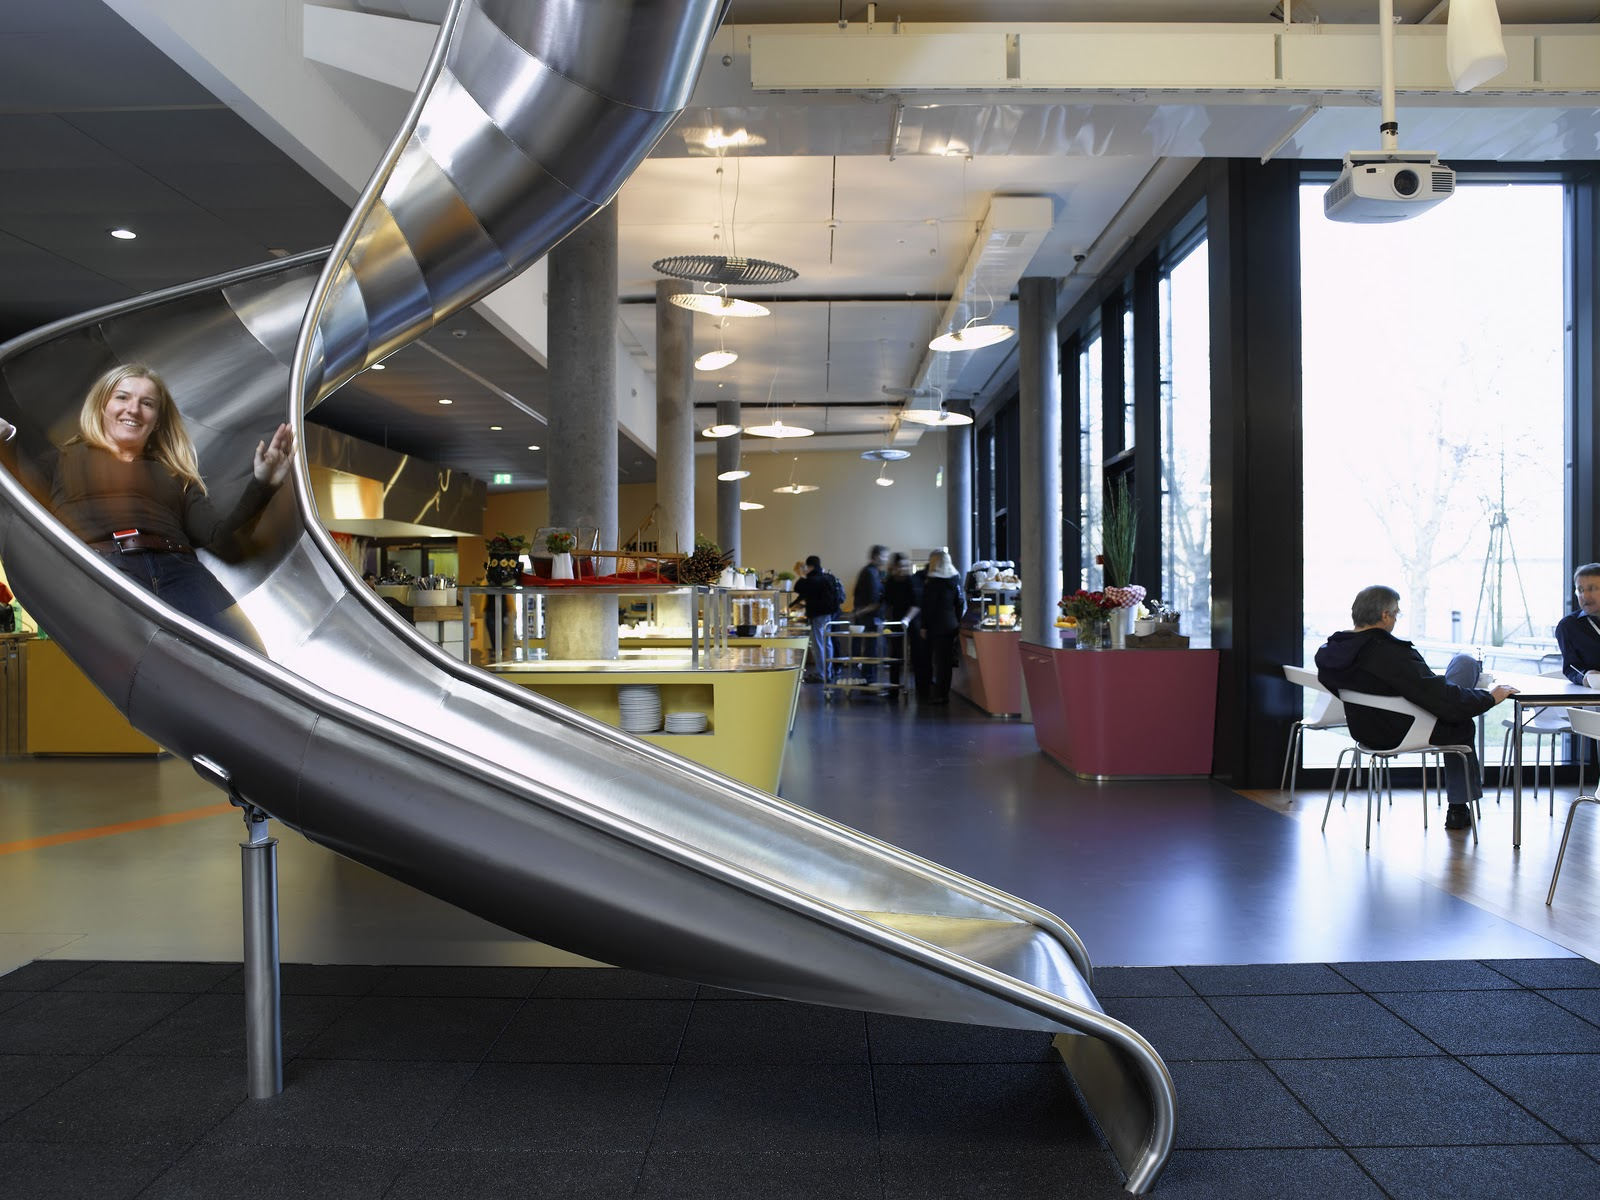 google office slides. They Have Massage Chairs, Slides, Pool Tables And Other Games, Private Cabins Much More. These Photos Are From Google Office In Zurich. Slides